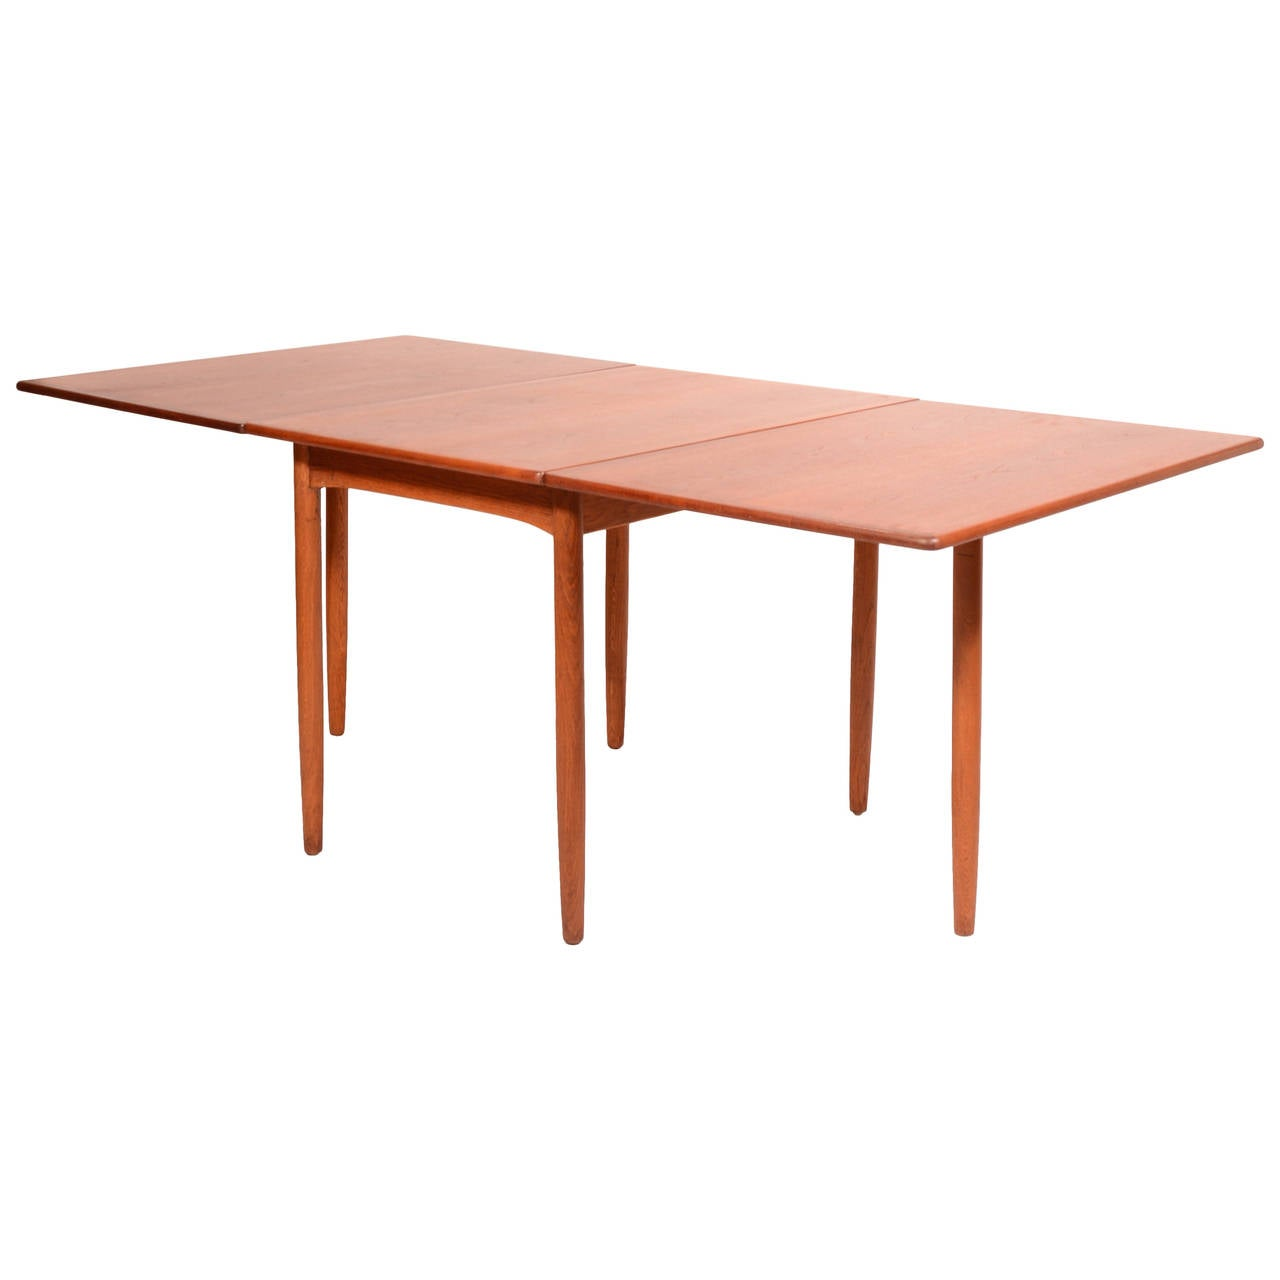 Mid century danish modern drop leaf dining table by hans c for Dining room table replacement leaf